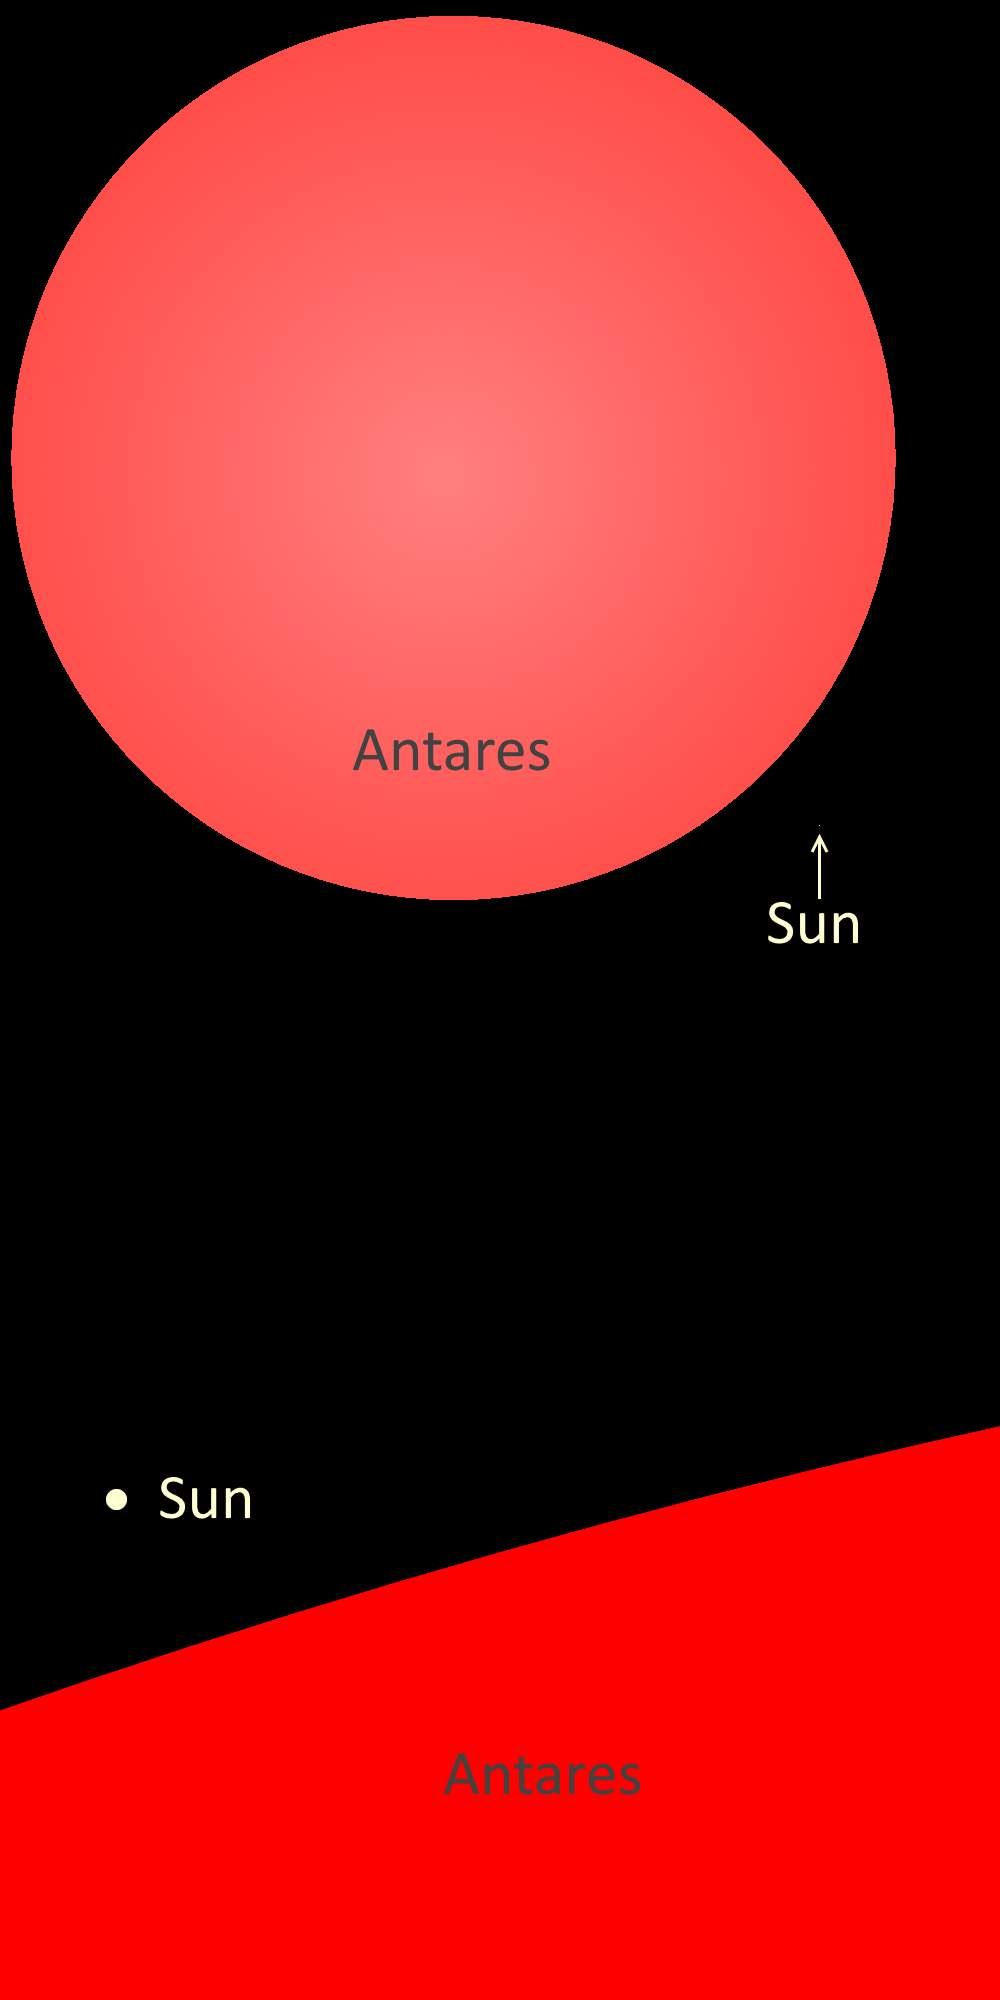 Antares vs Sun size comparison